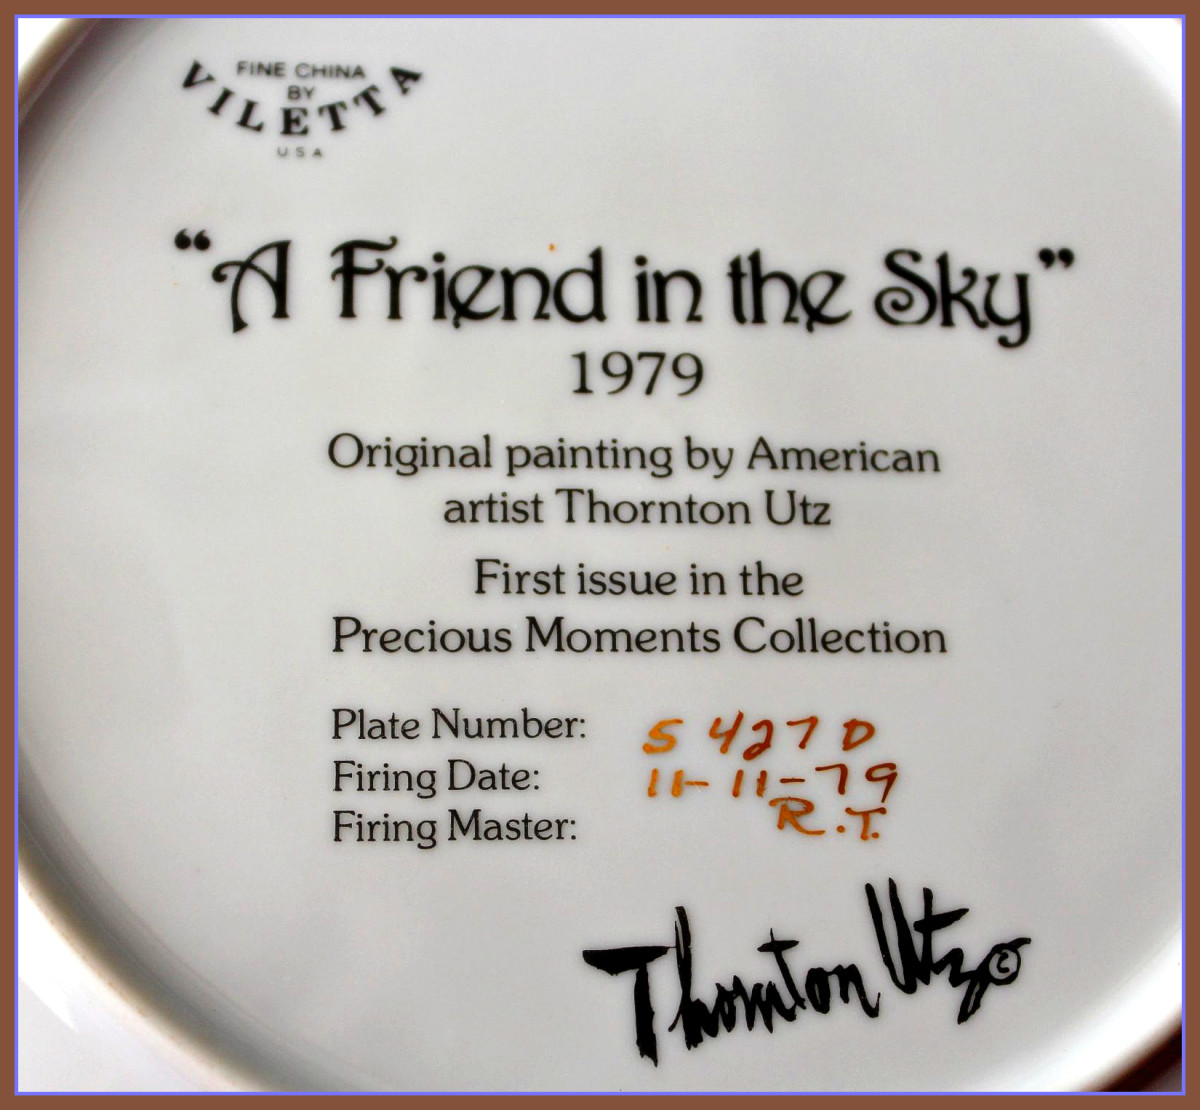 This is Villetta plate #5427D, Firing Date 11-11-79, Firing Master R.T.  This plate is a 1979 original painting by the american artist THORNTON UTZ for the first issue of the limited edition PRECIOUS MOMENTS collection.